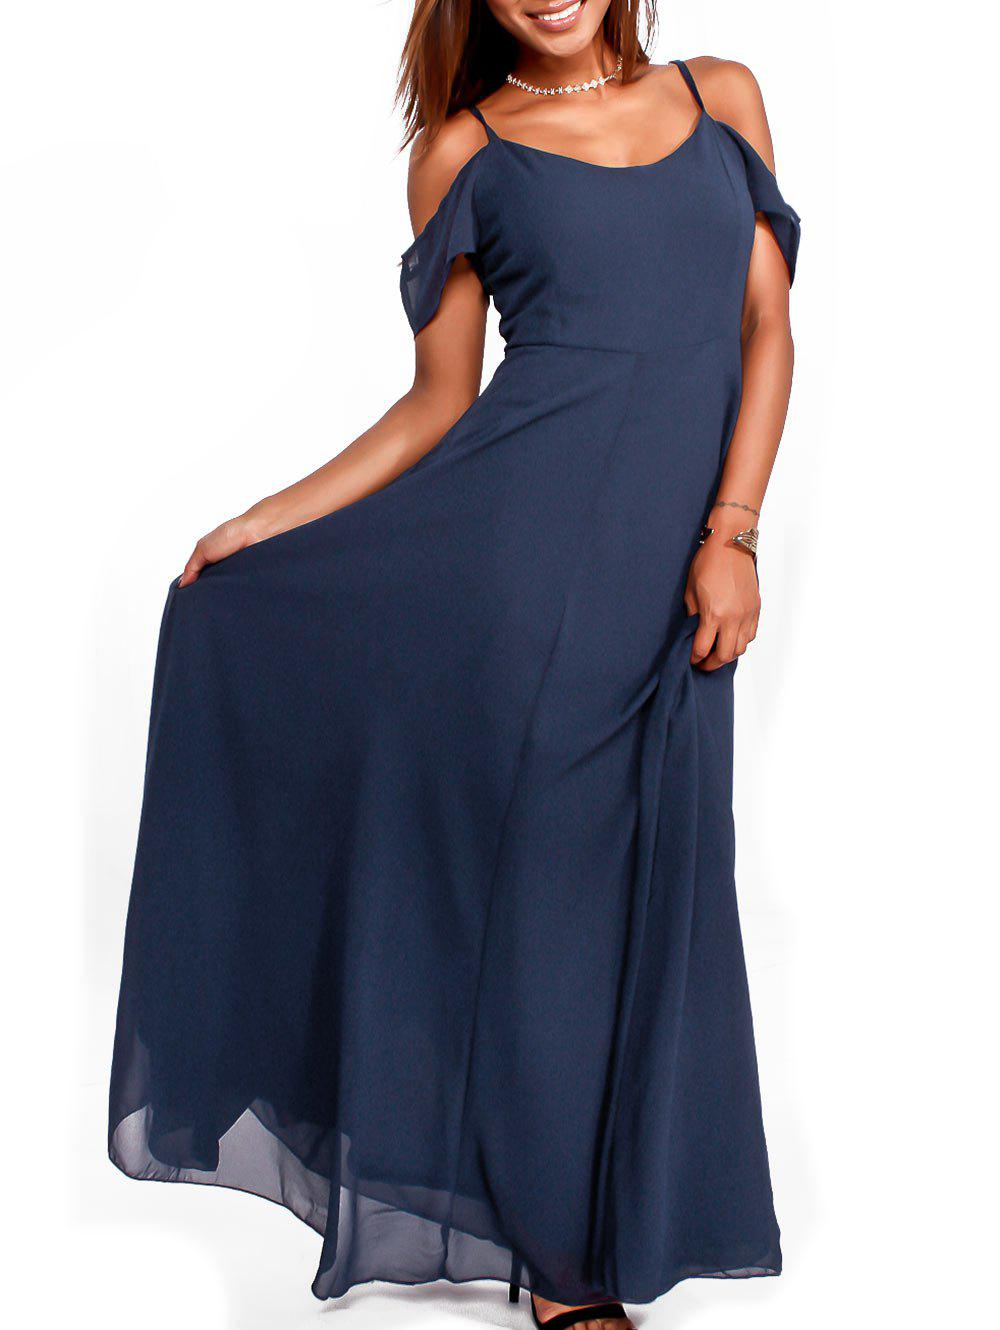 Chiffon Cold Shoulder Maxi Flowy DressWOMEN<br><br>Size: XL; Color: PURPLISH BLUE; Style: Brief; Material: Polyester; Silhouette: A-Line; Dresses Length: Floor-Length; Neckline: Spaghetti Strap; Sleeve Length: Short Sleeves; Pattern Type: Solid Color; With Belt: No; Season: Fall,Spring,Summer; Weight: 0.4500kg; Package Contents: 1 x Dress;